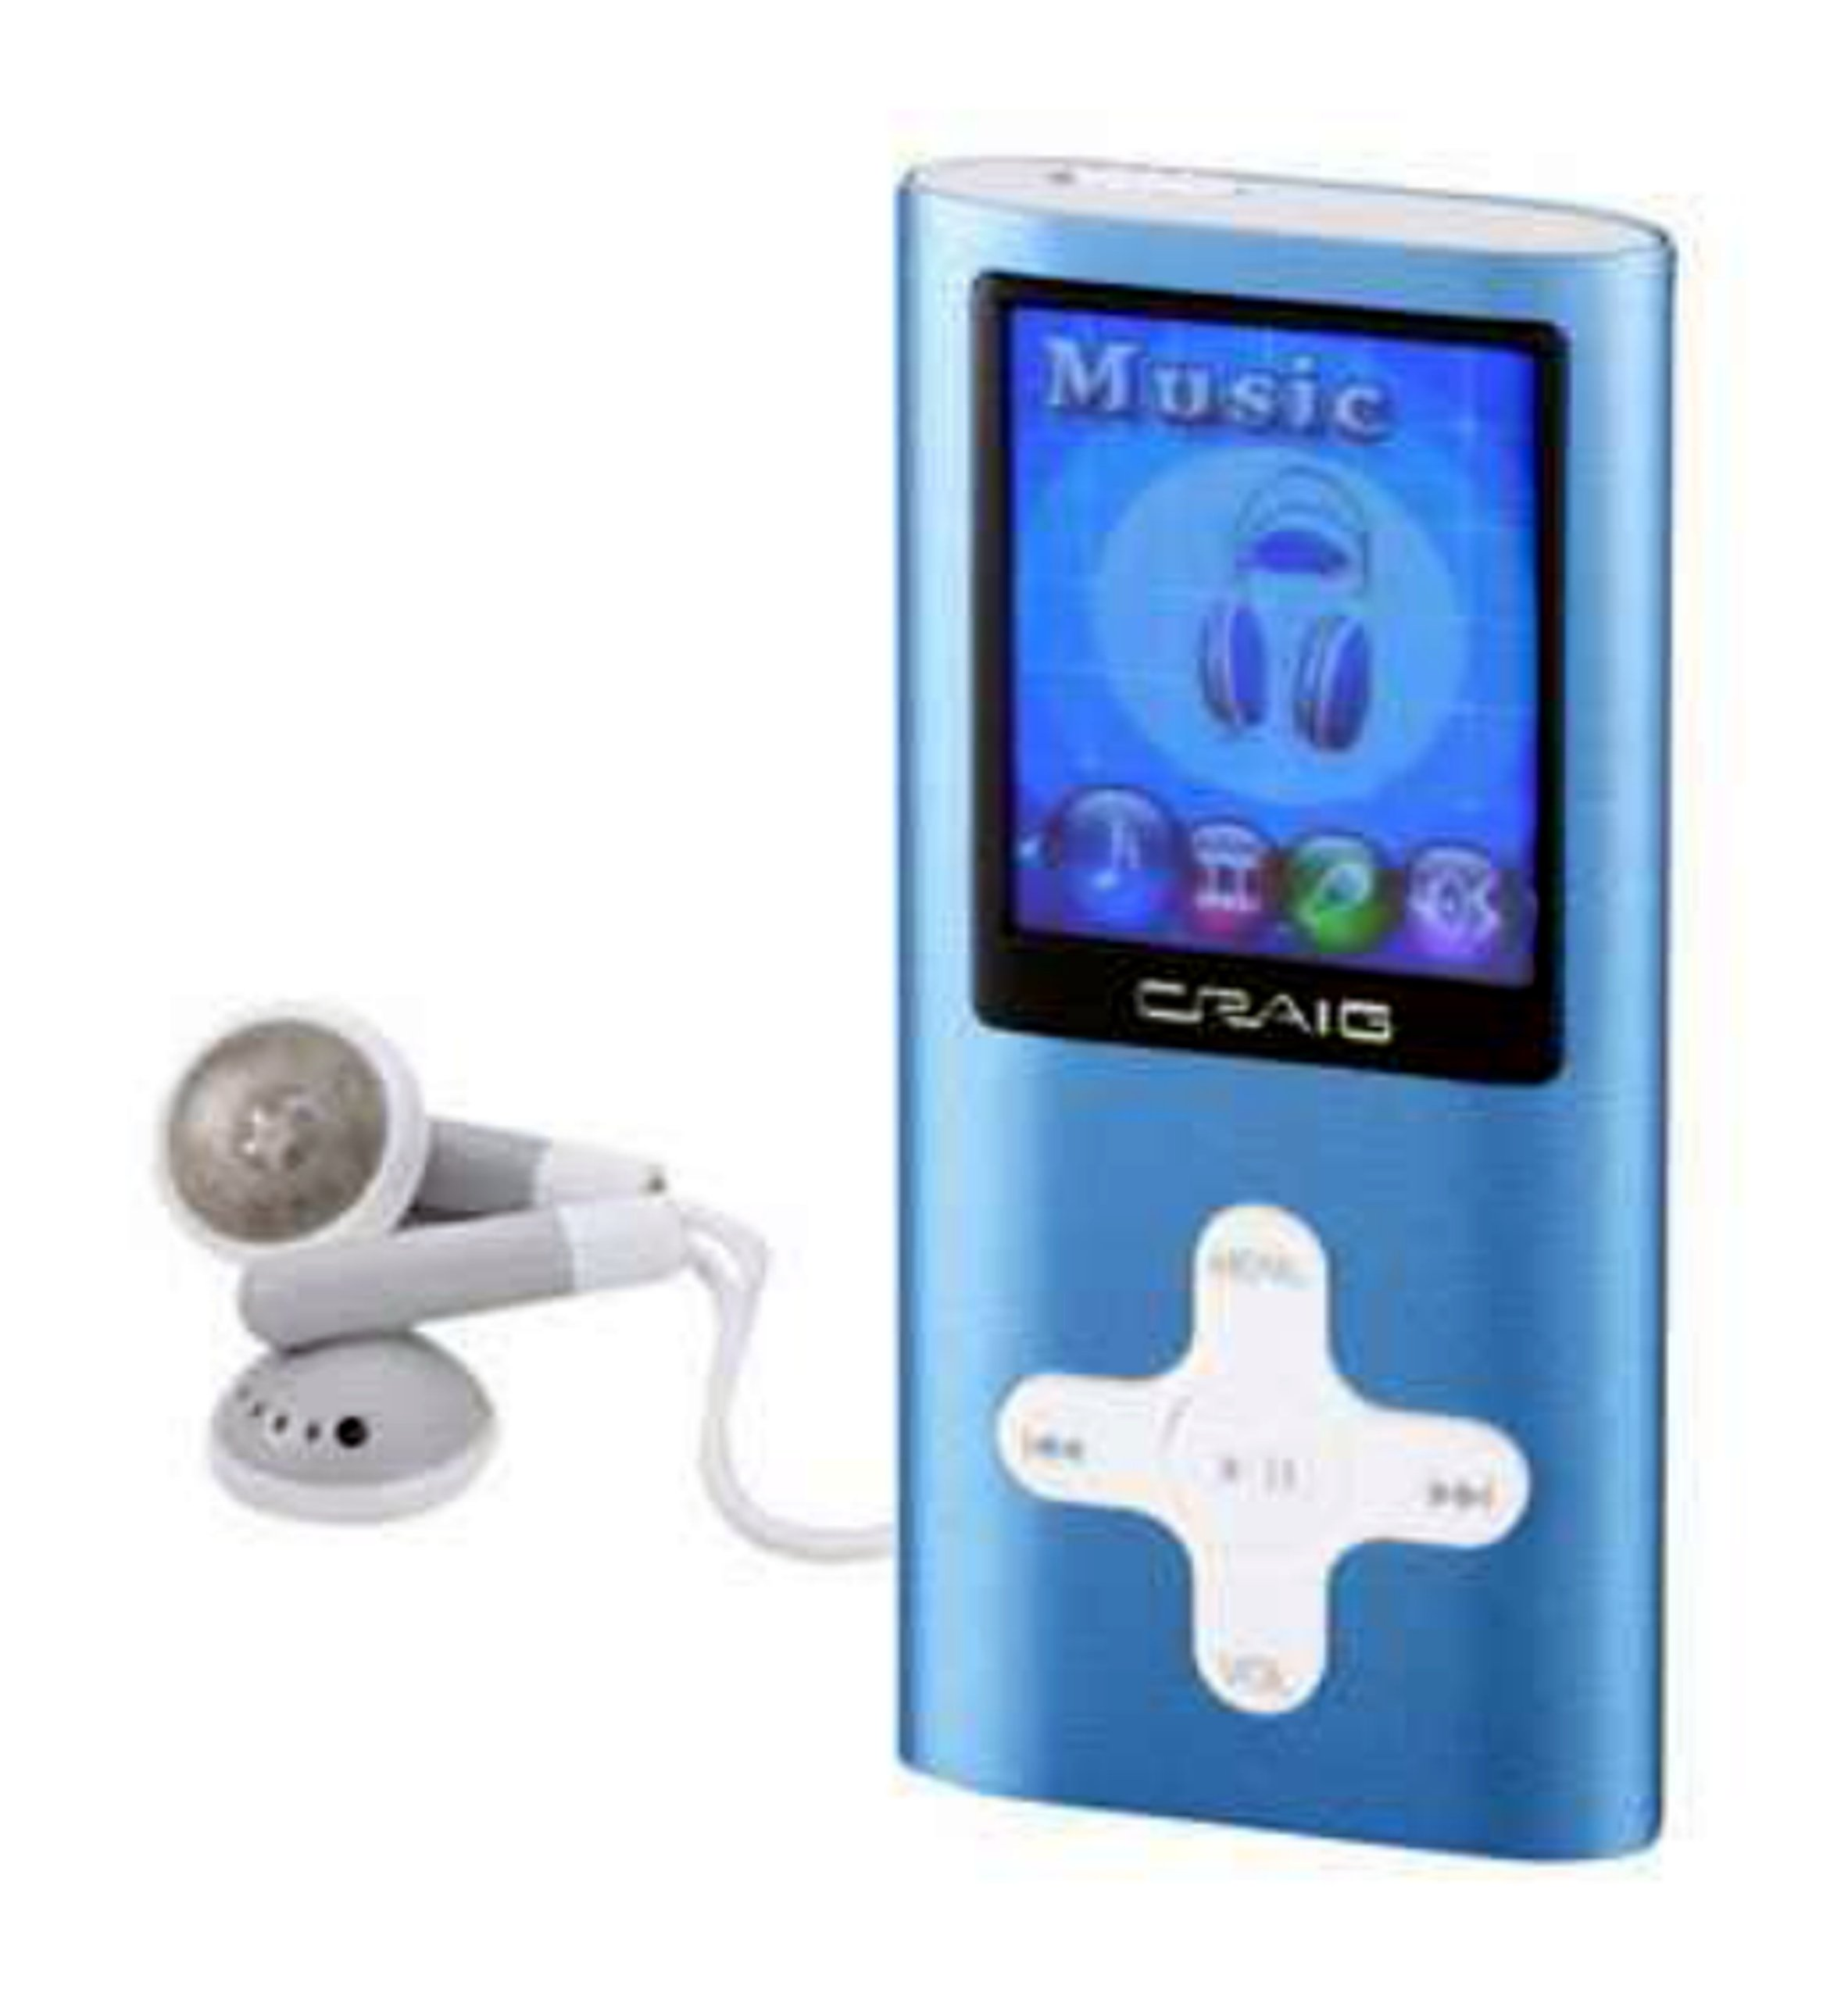 Craig Electronics 4GB MP3 Plus Video Player With 1.8-Inch Color Display